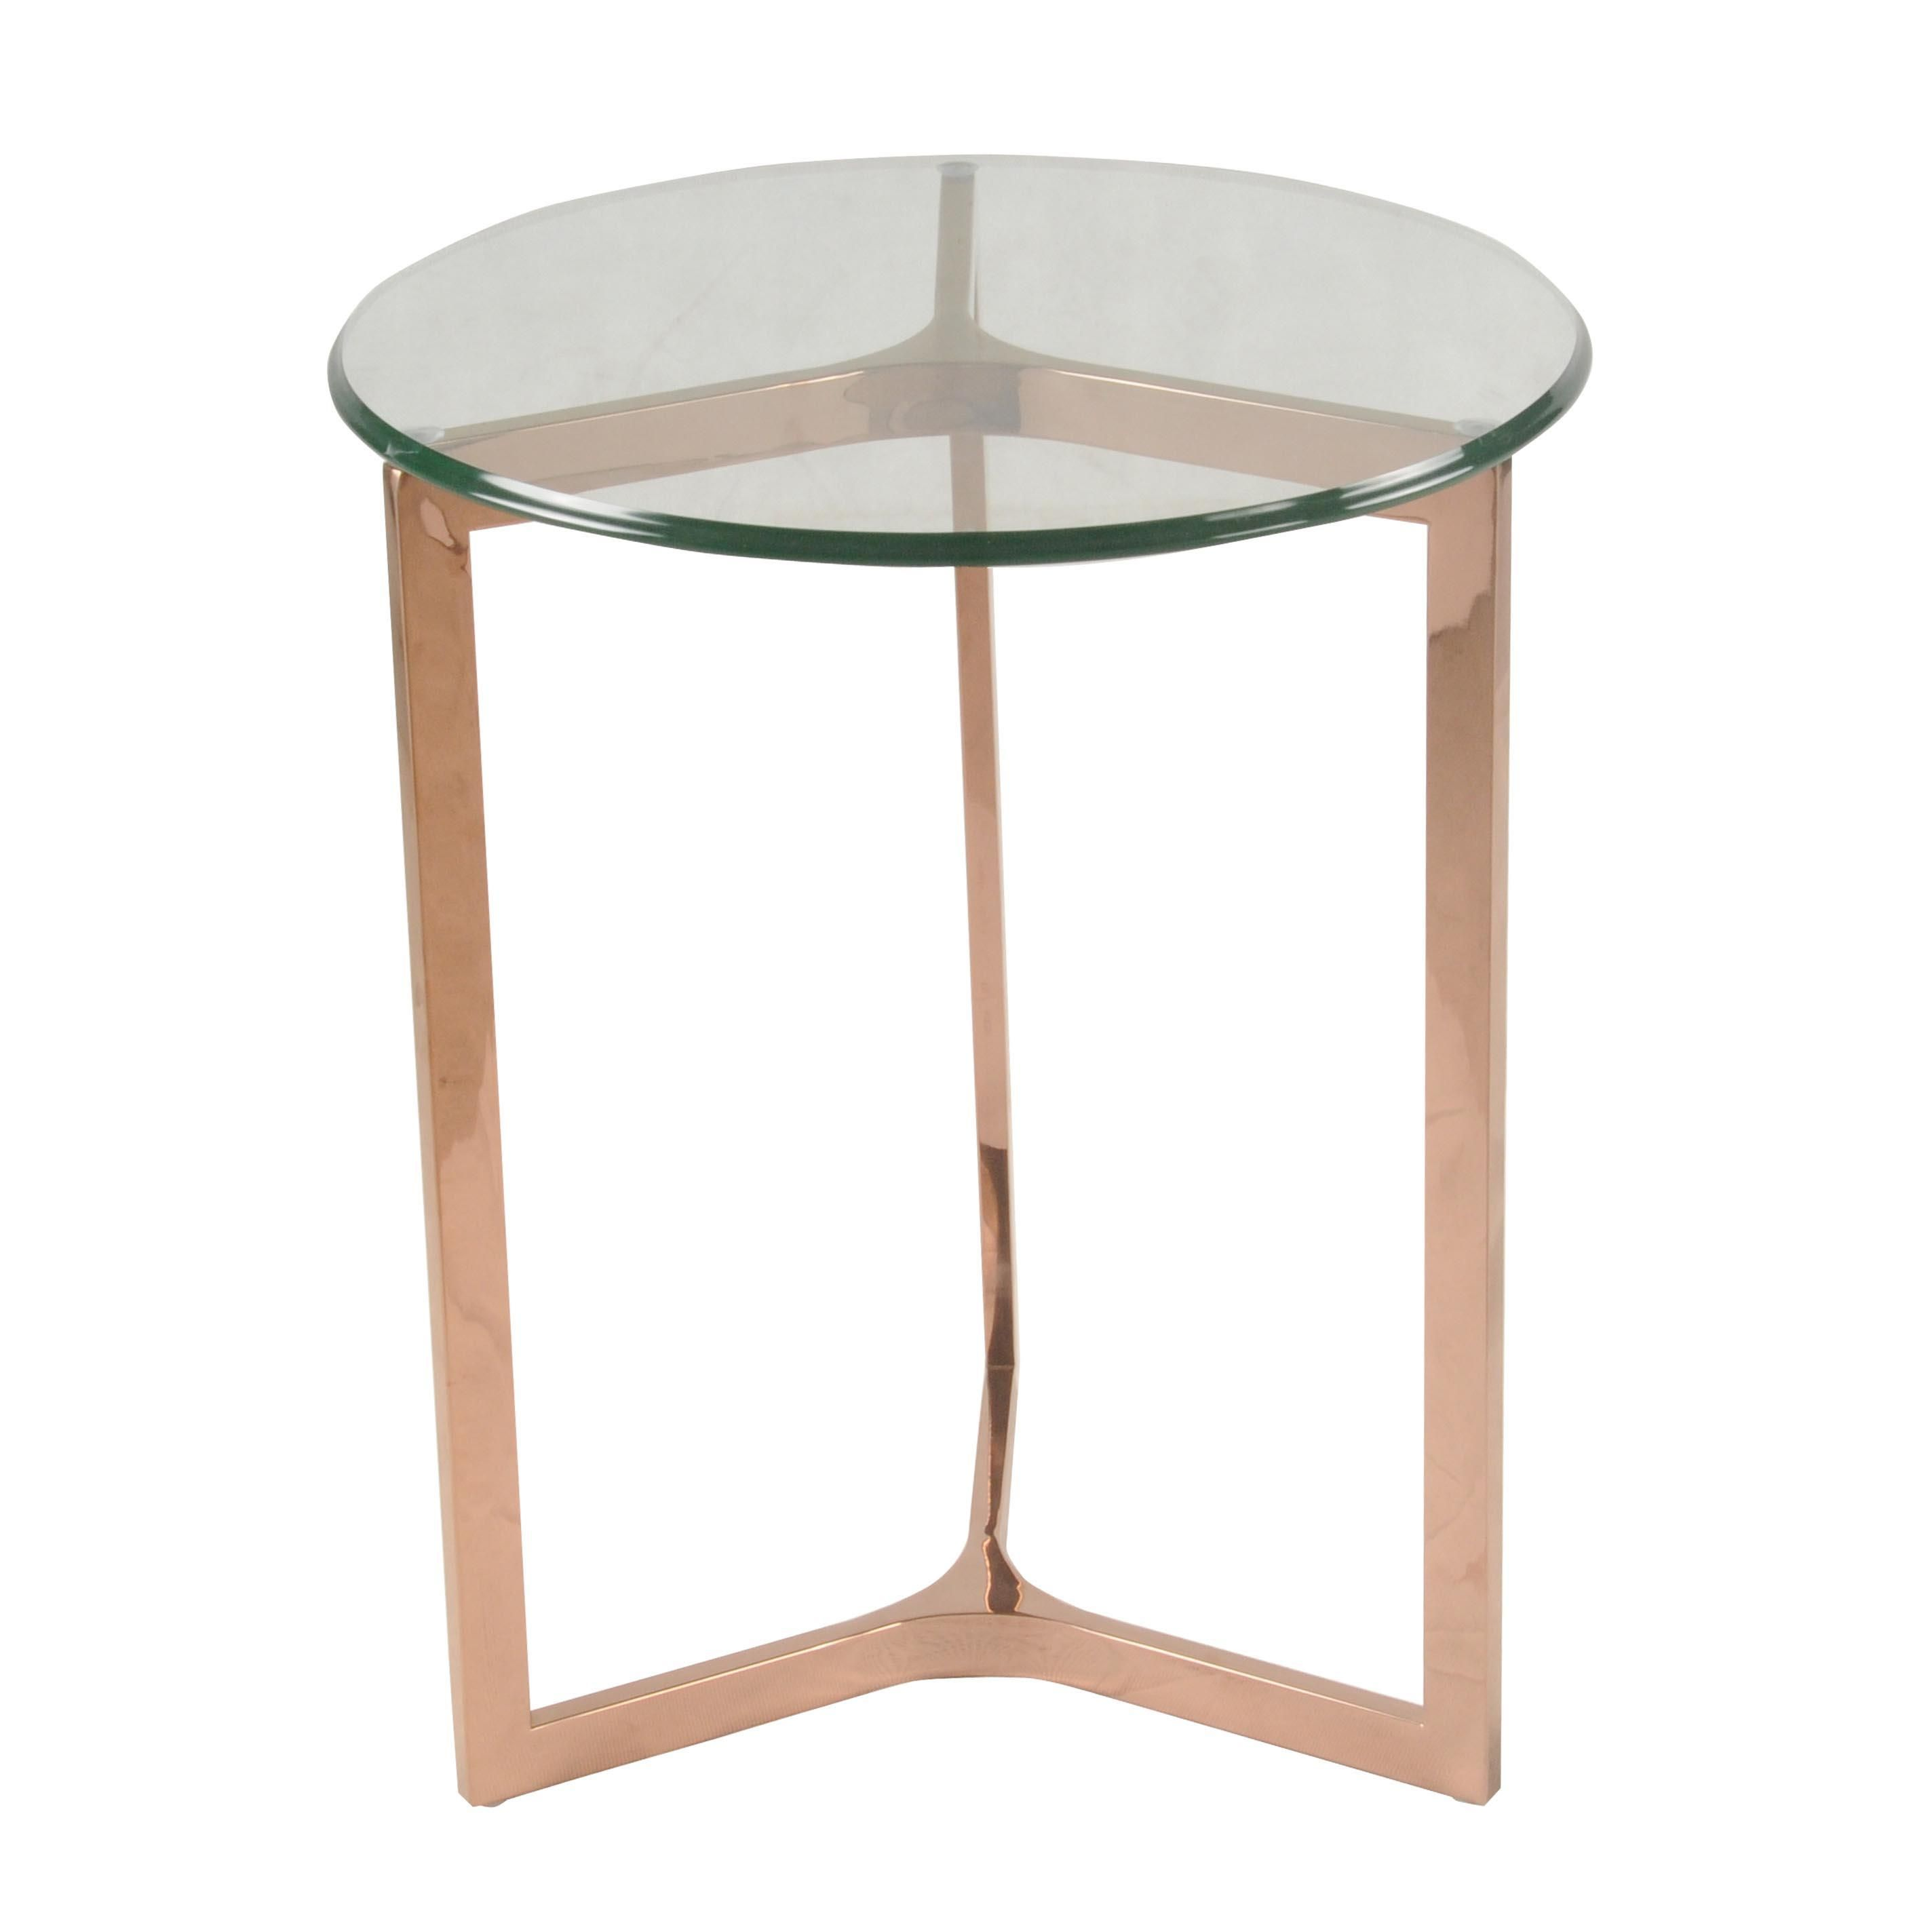 Add Some Glamour With The San Clemente Side Table Made Of Stainless Steel And Tempered Gl